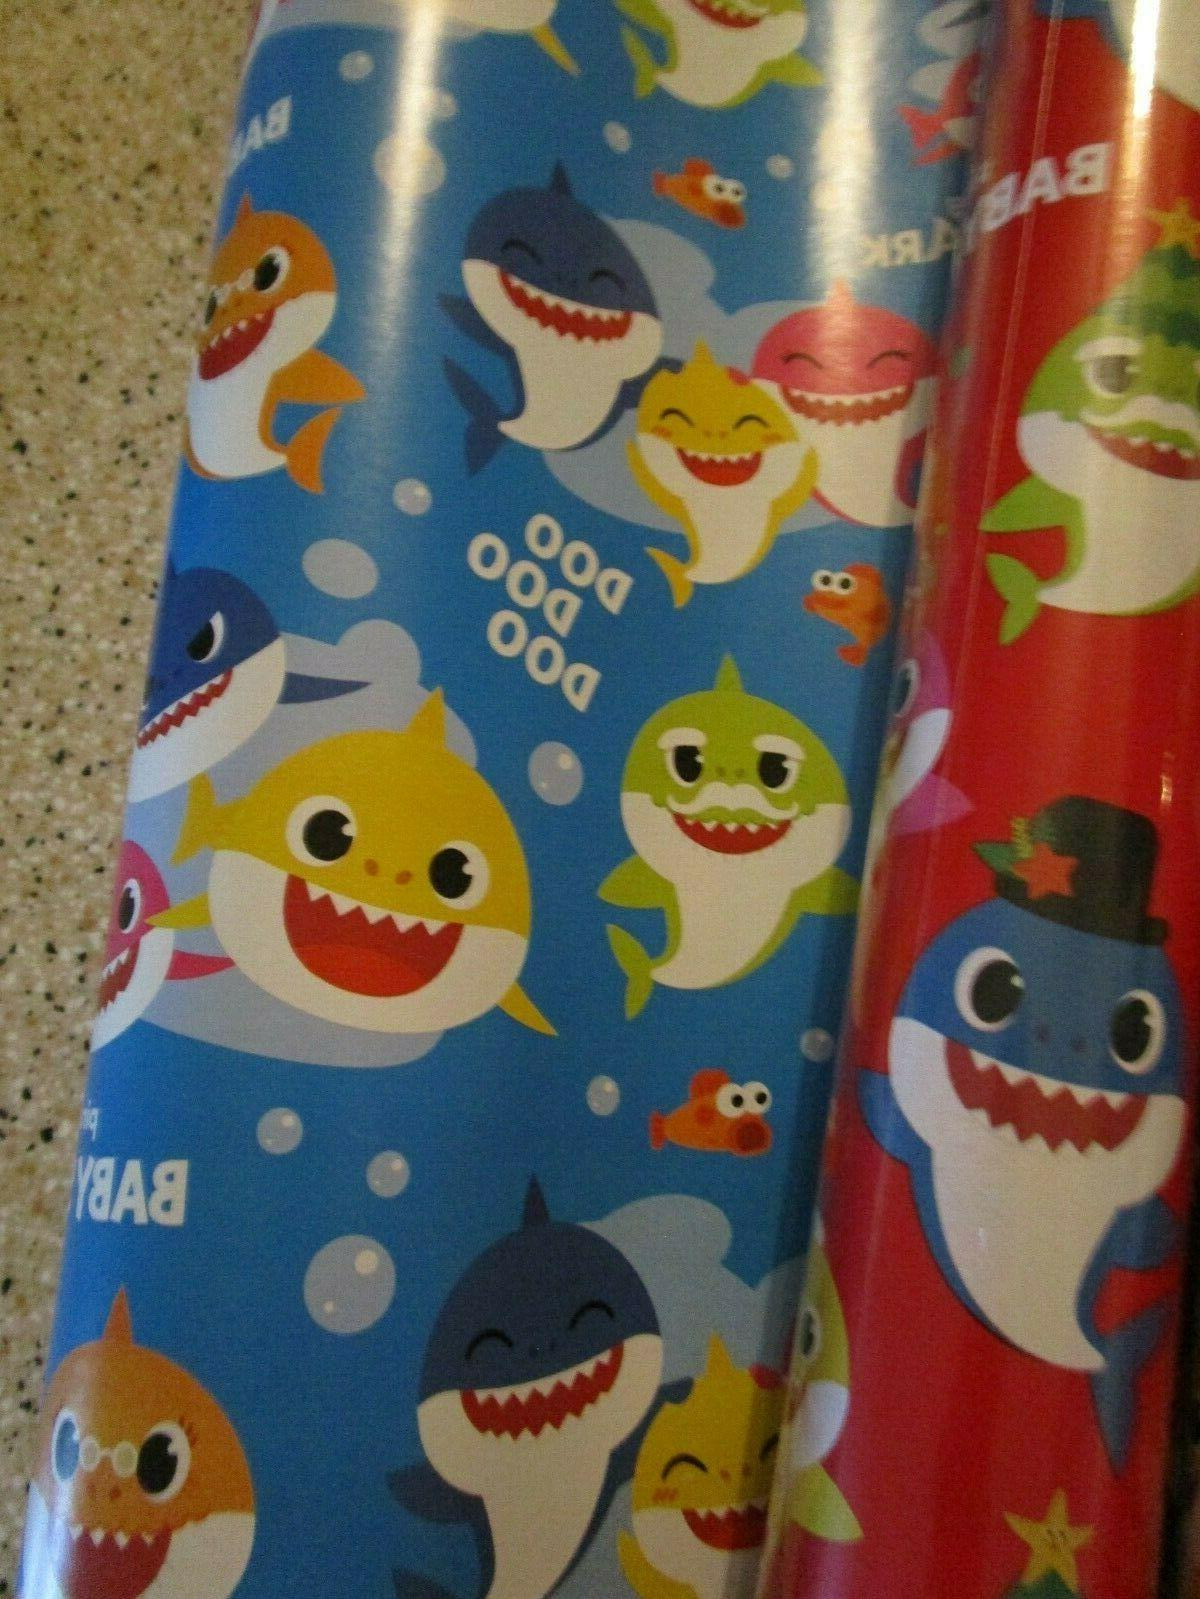 PINKFONG SHARK ROLLS WRAPPING PAPER 70 SQ 1 RED BLUE